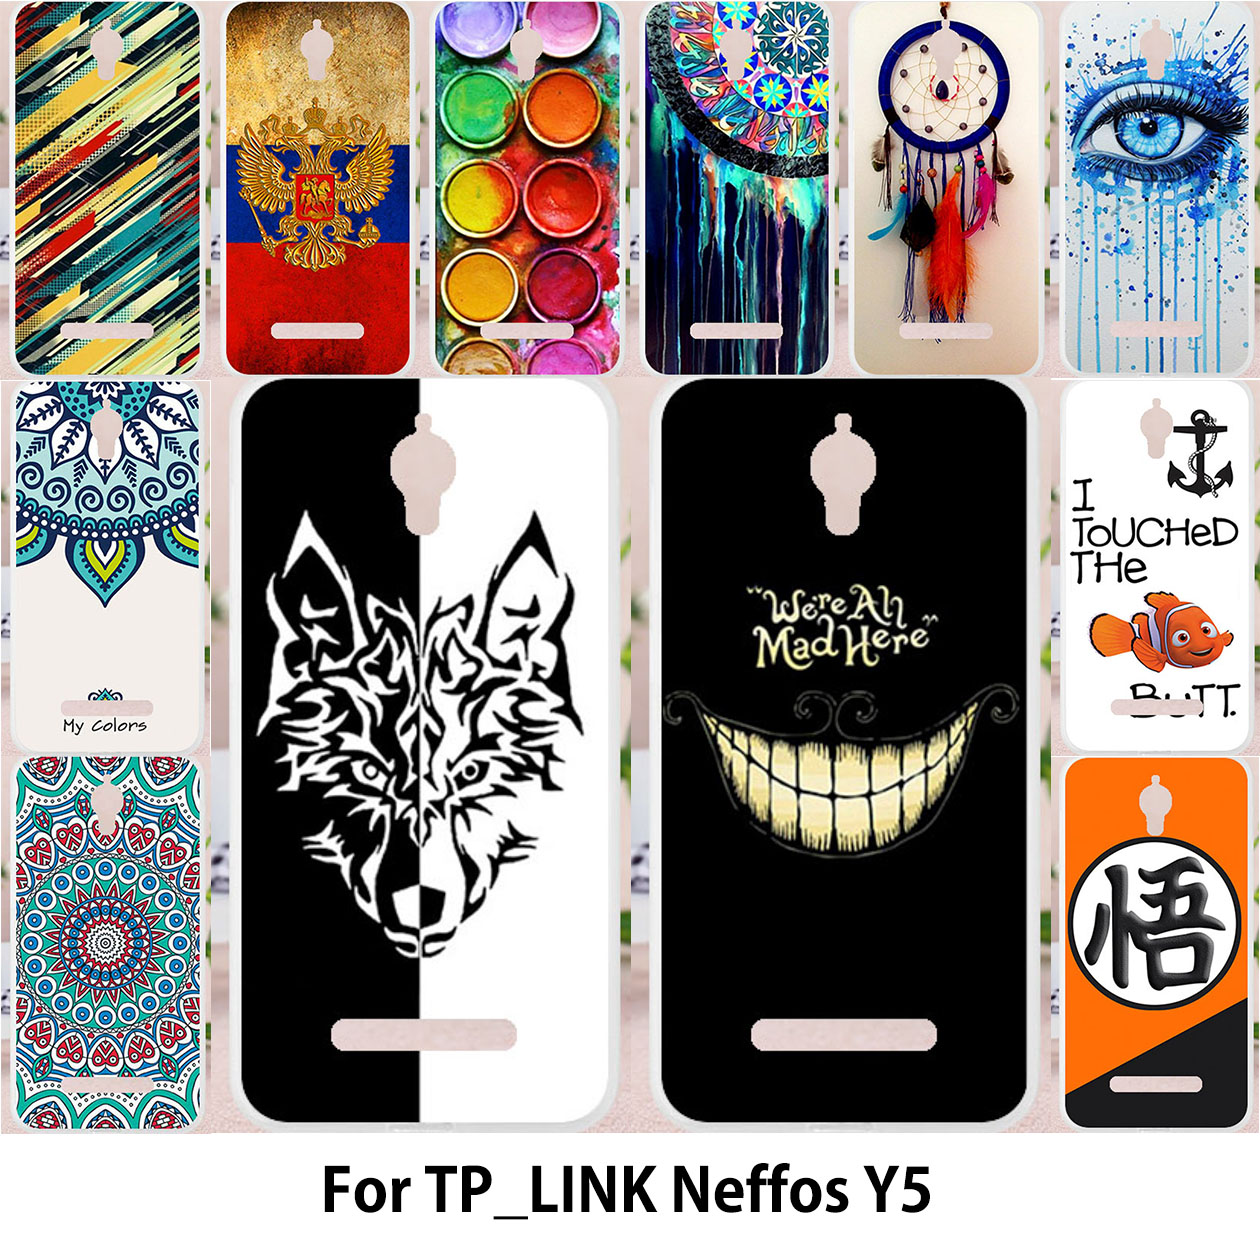 TAOYUNXI For TP-LINK Neffos Y5 case Silicon Case For TPLINK Neffos Y5 TP802A Cover Dream ...